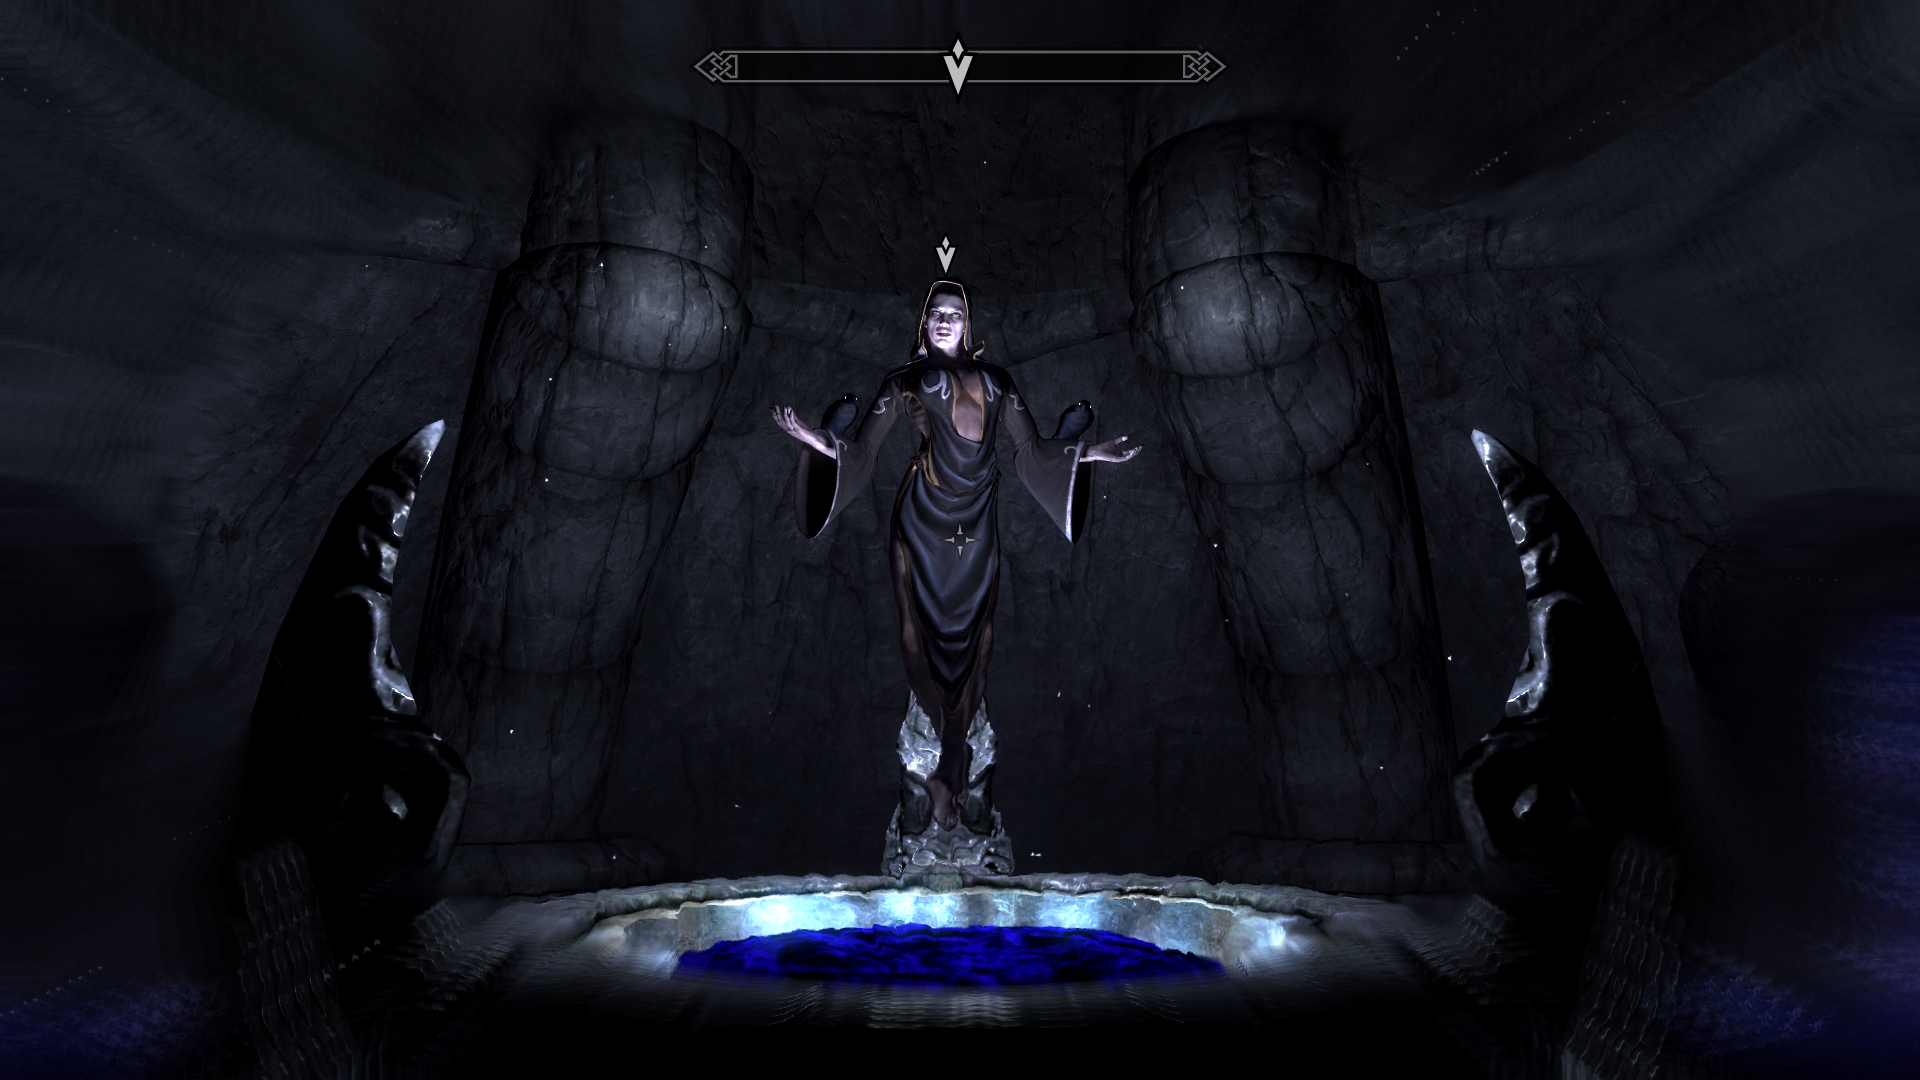 The Elder Scrolls V: Skyrim Windows I'm listening to Nocturnal, the Daedric Prince of Darkness